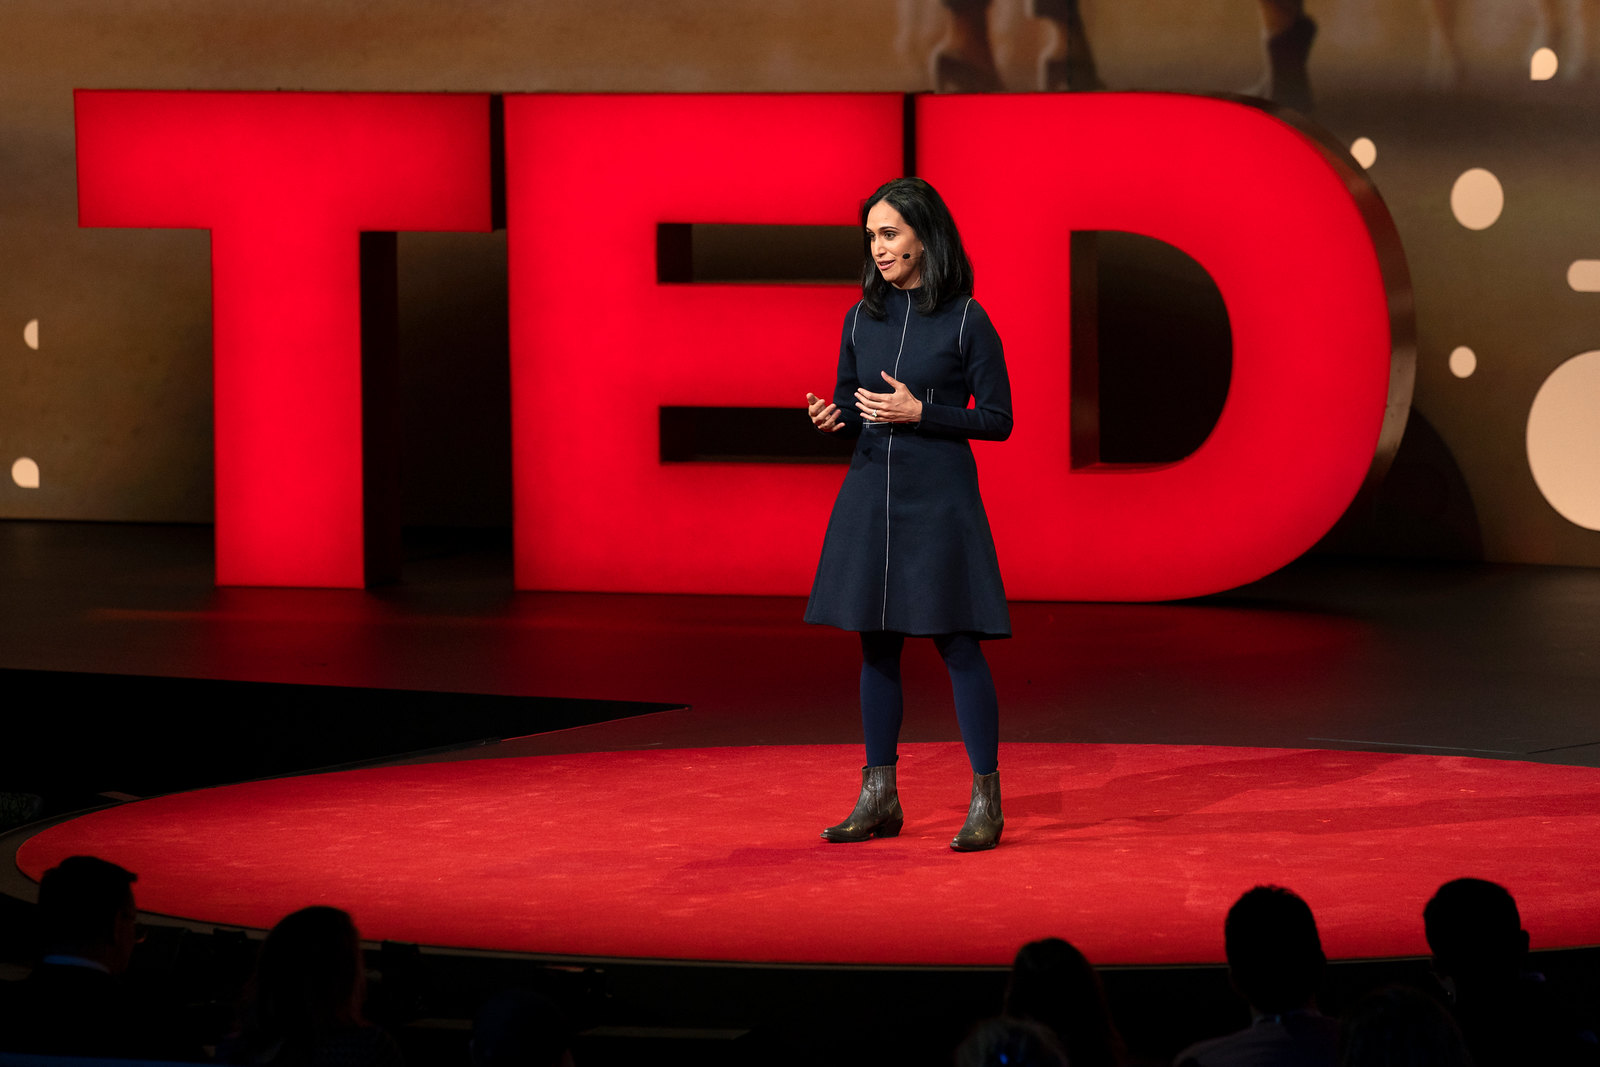 Conflict mediator Priya Parker at TED